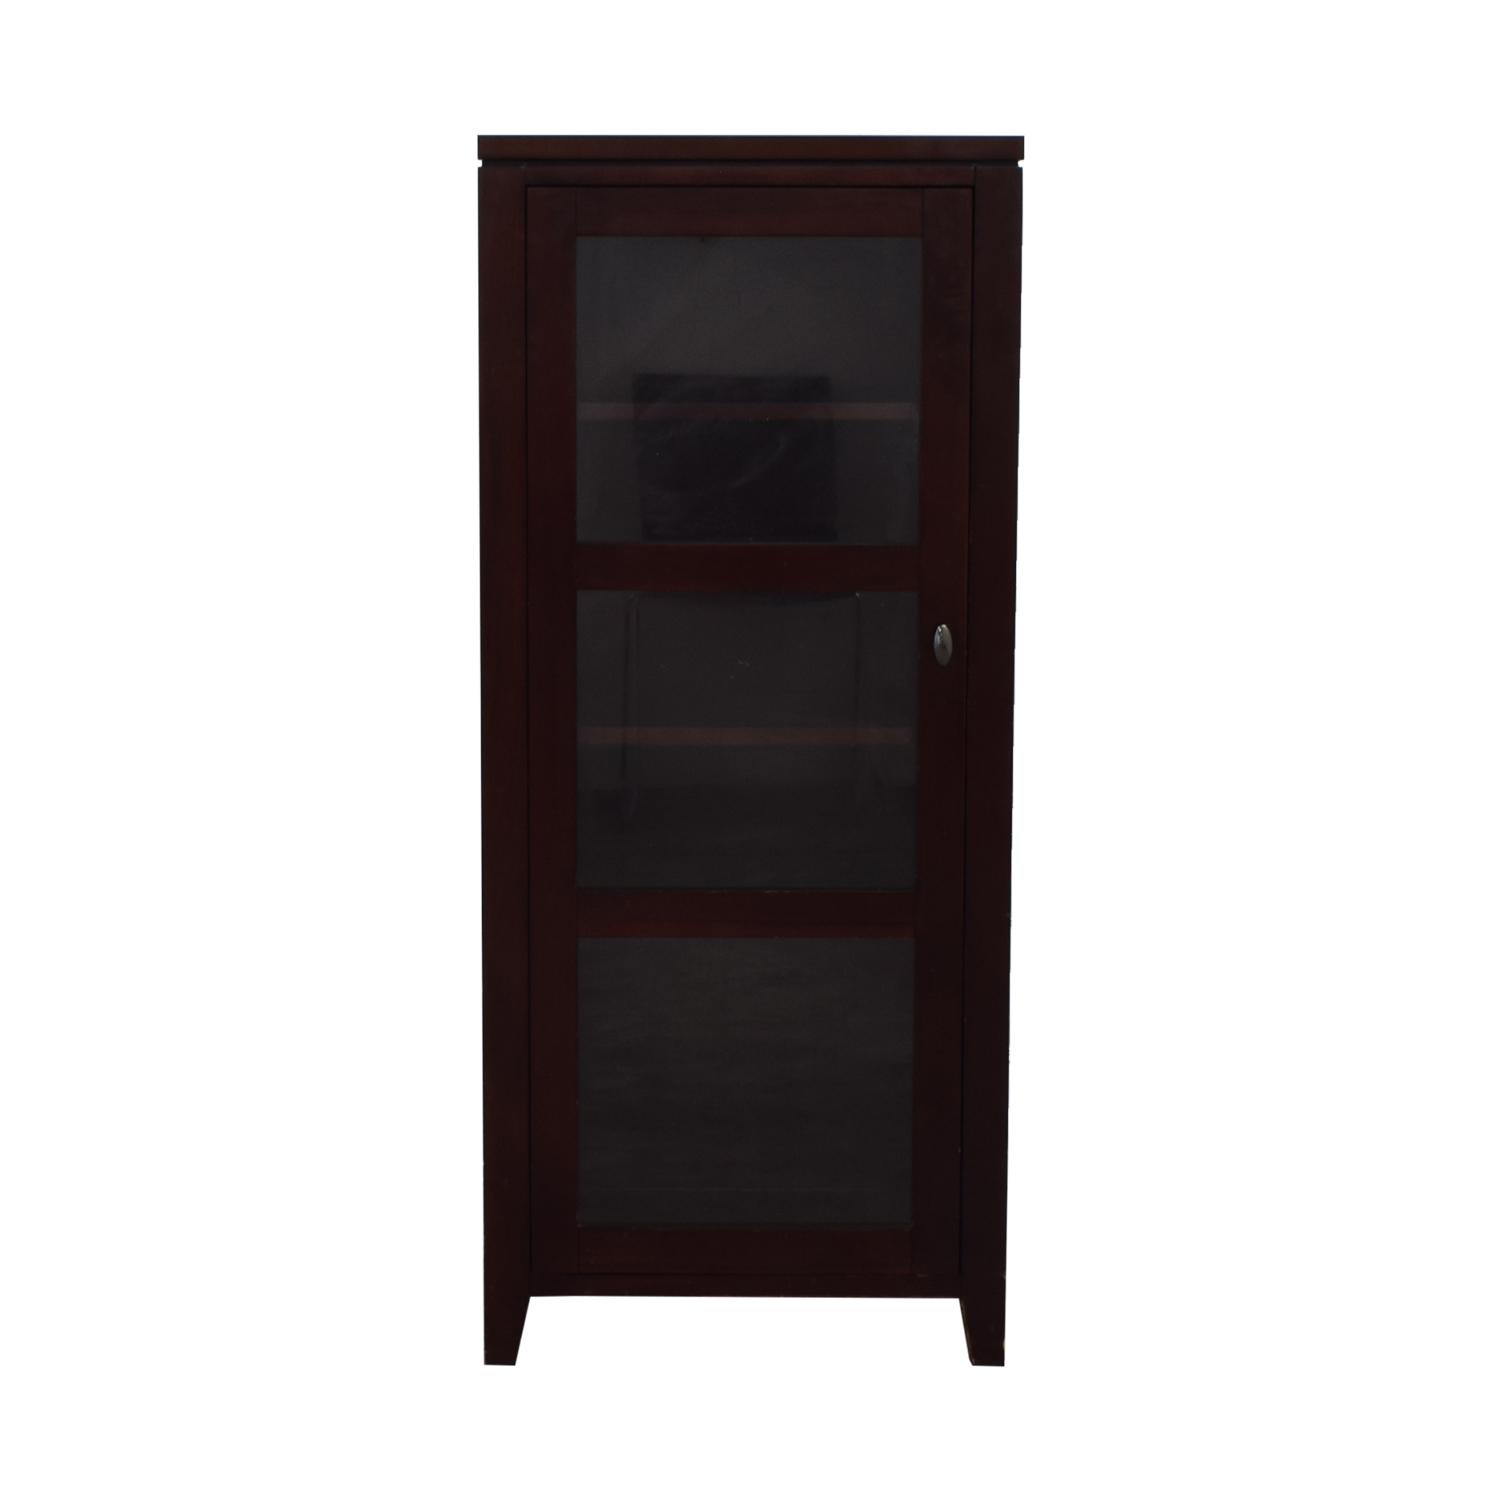 Crate & Barrel Kingston Tall Cabinet sale